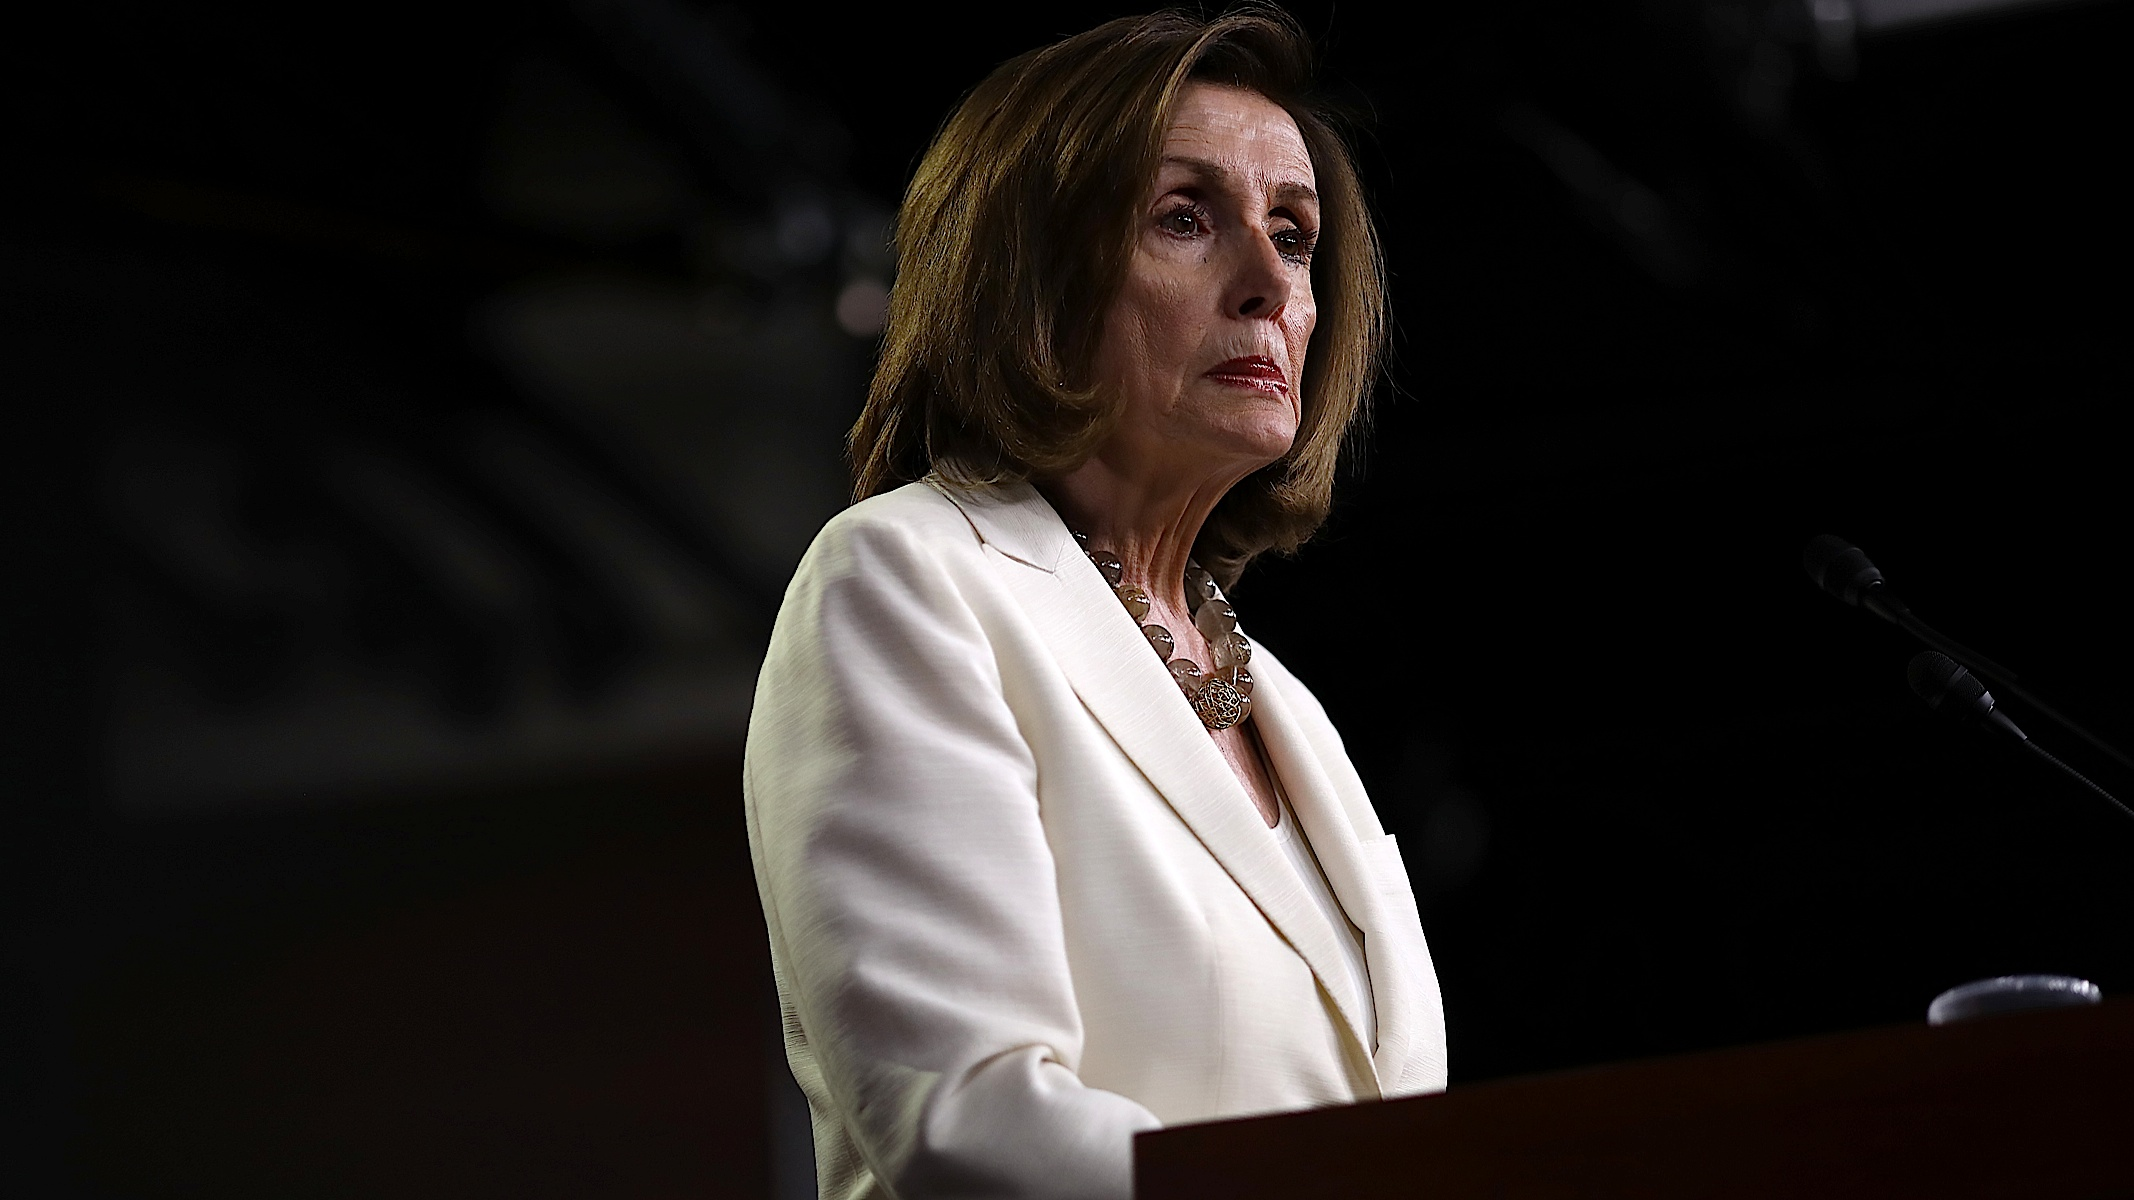 Under Intense Democratic Pressure, Nancy Pelosi May Be Losing Her Cowardice on Impeachment